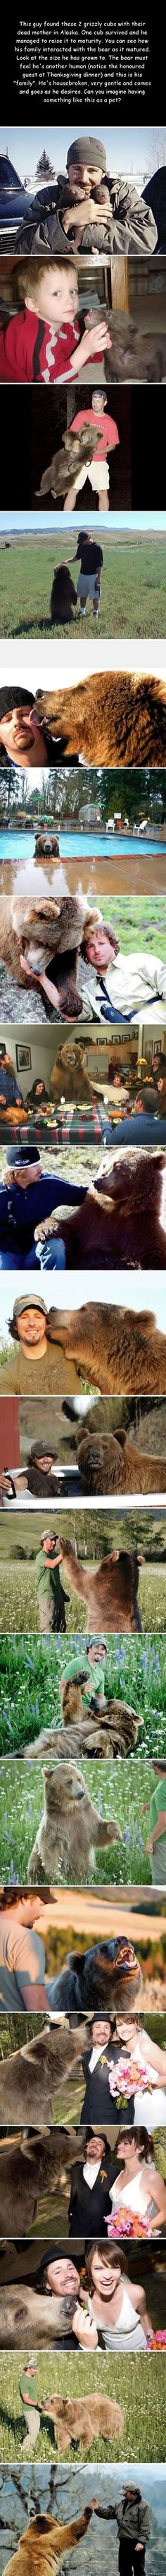 The story of a man and his bear... I want one.